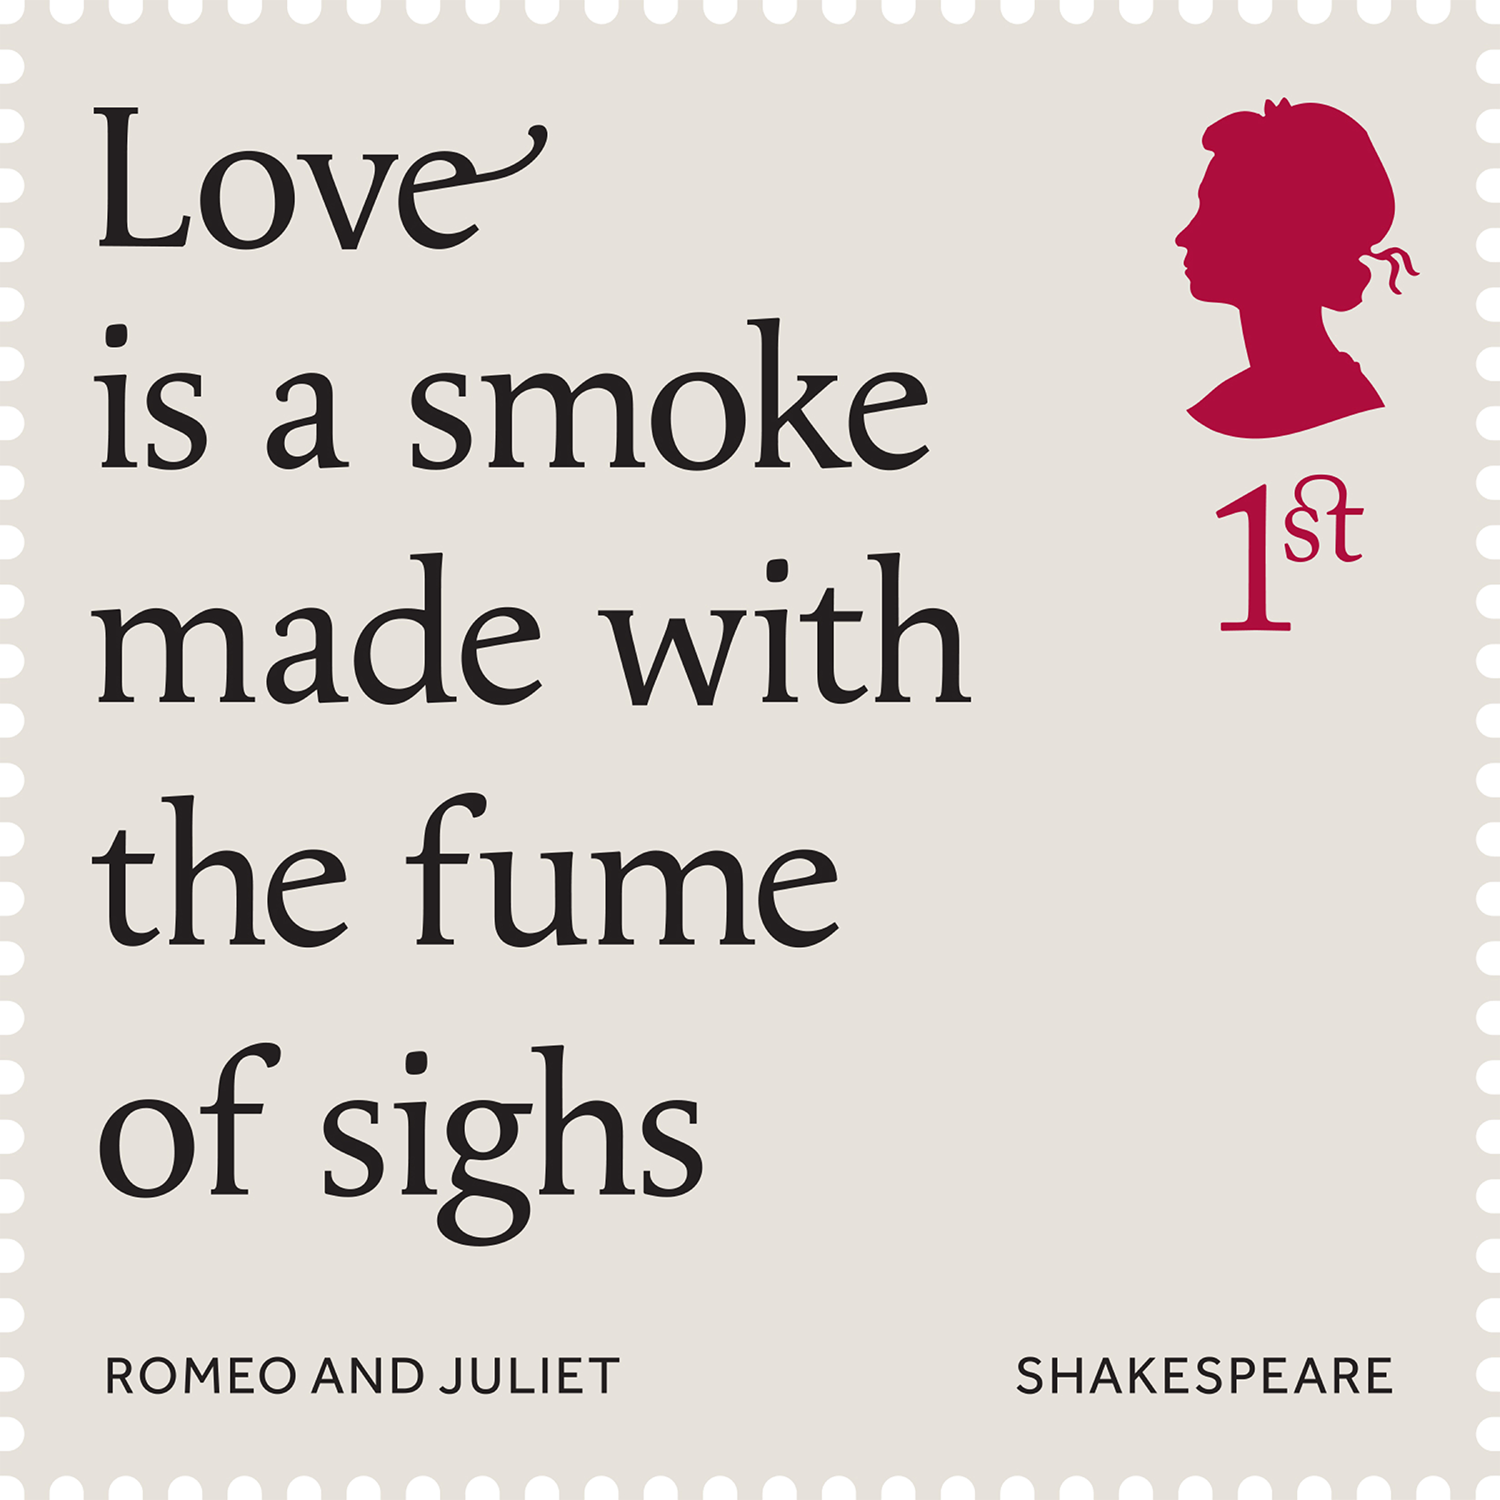 Romeo And Juliet Quotes And Meanings Romeo And Juliet #specialstamp From 2016 'shakespeare'  Bookworms .